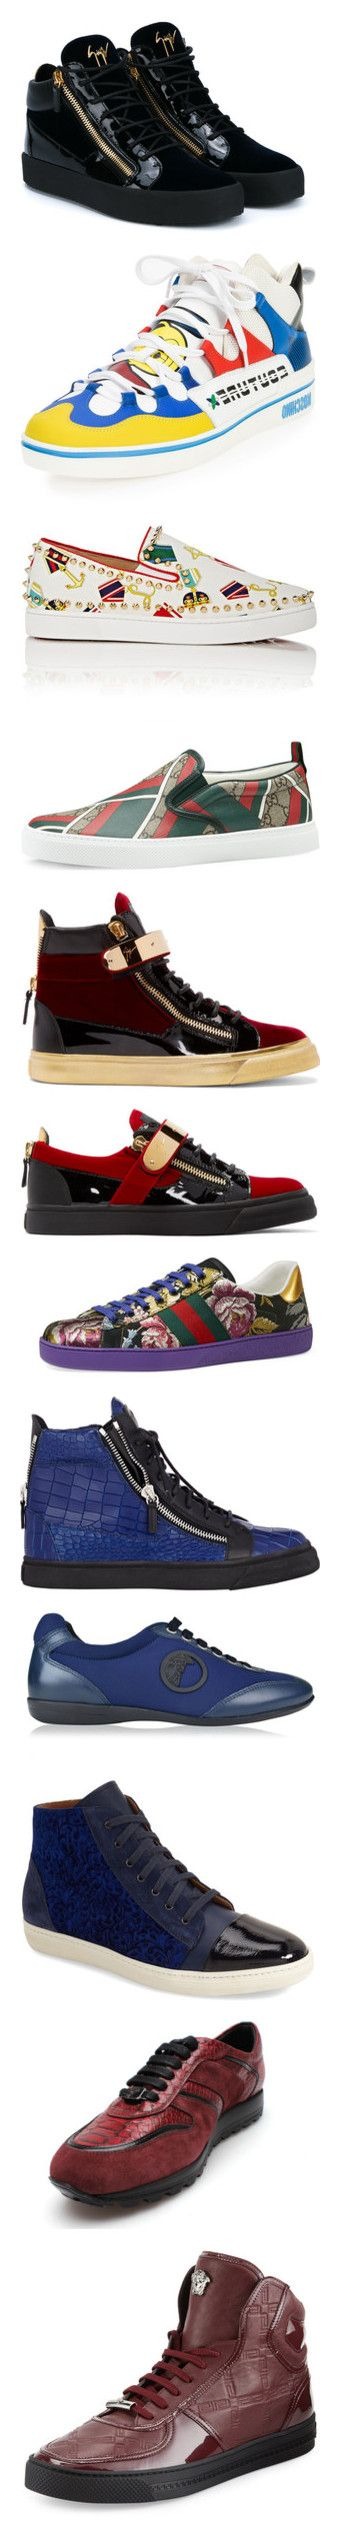 """""""Footwear"""" by palmershaun ❤ liked on Polyvore featuring men's fashion, men's shoes, men's sneakers, mens velvet shoes, mens leather sneakers, mens leather shoes, giuseppe zanotti mens sneakers, multi colors, moschino mens shoes and mens perforated shoes"""